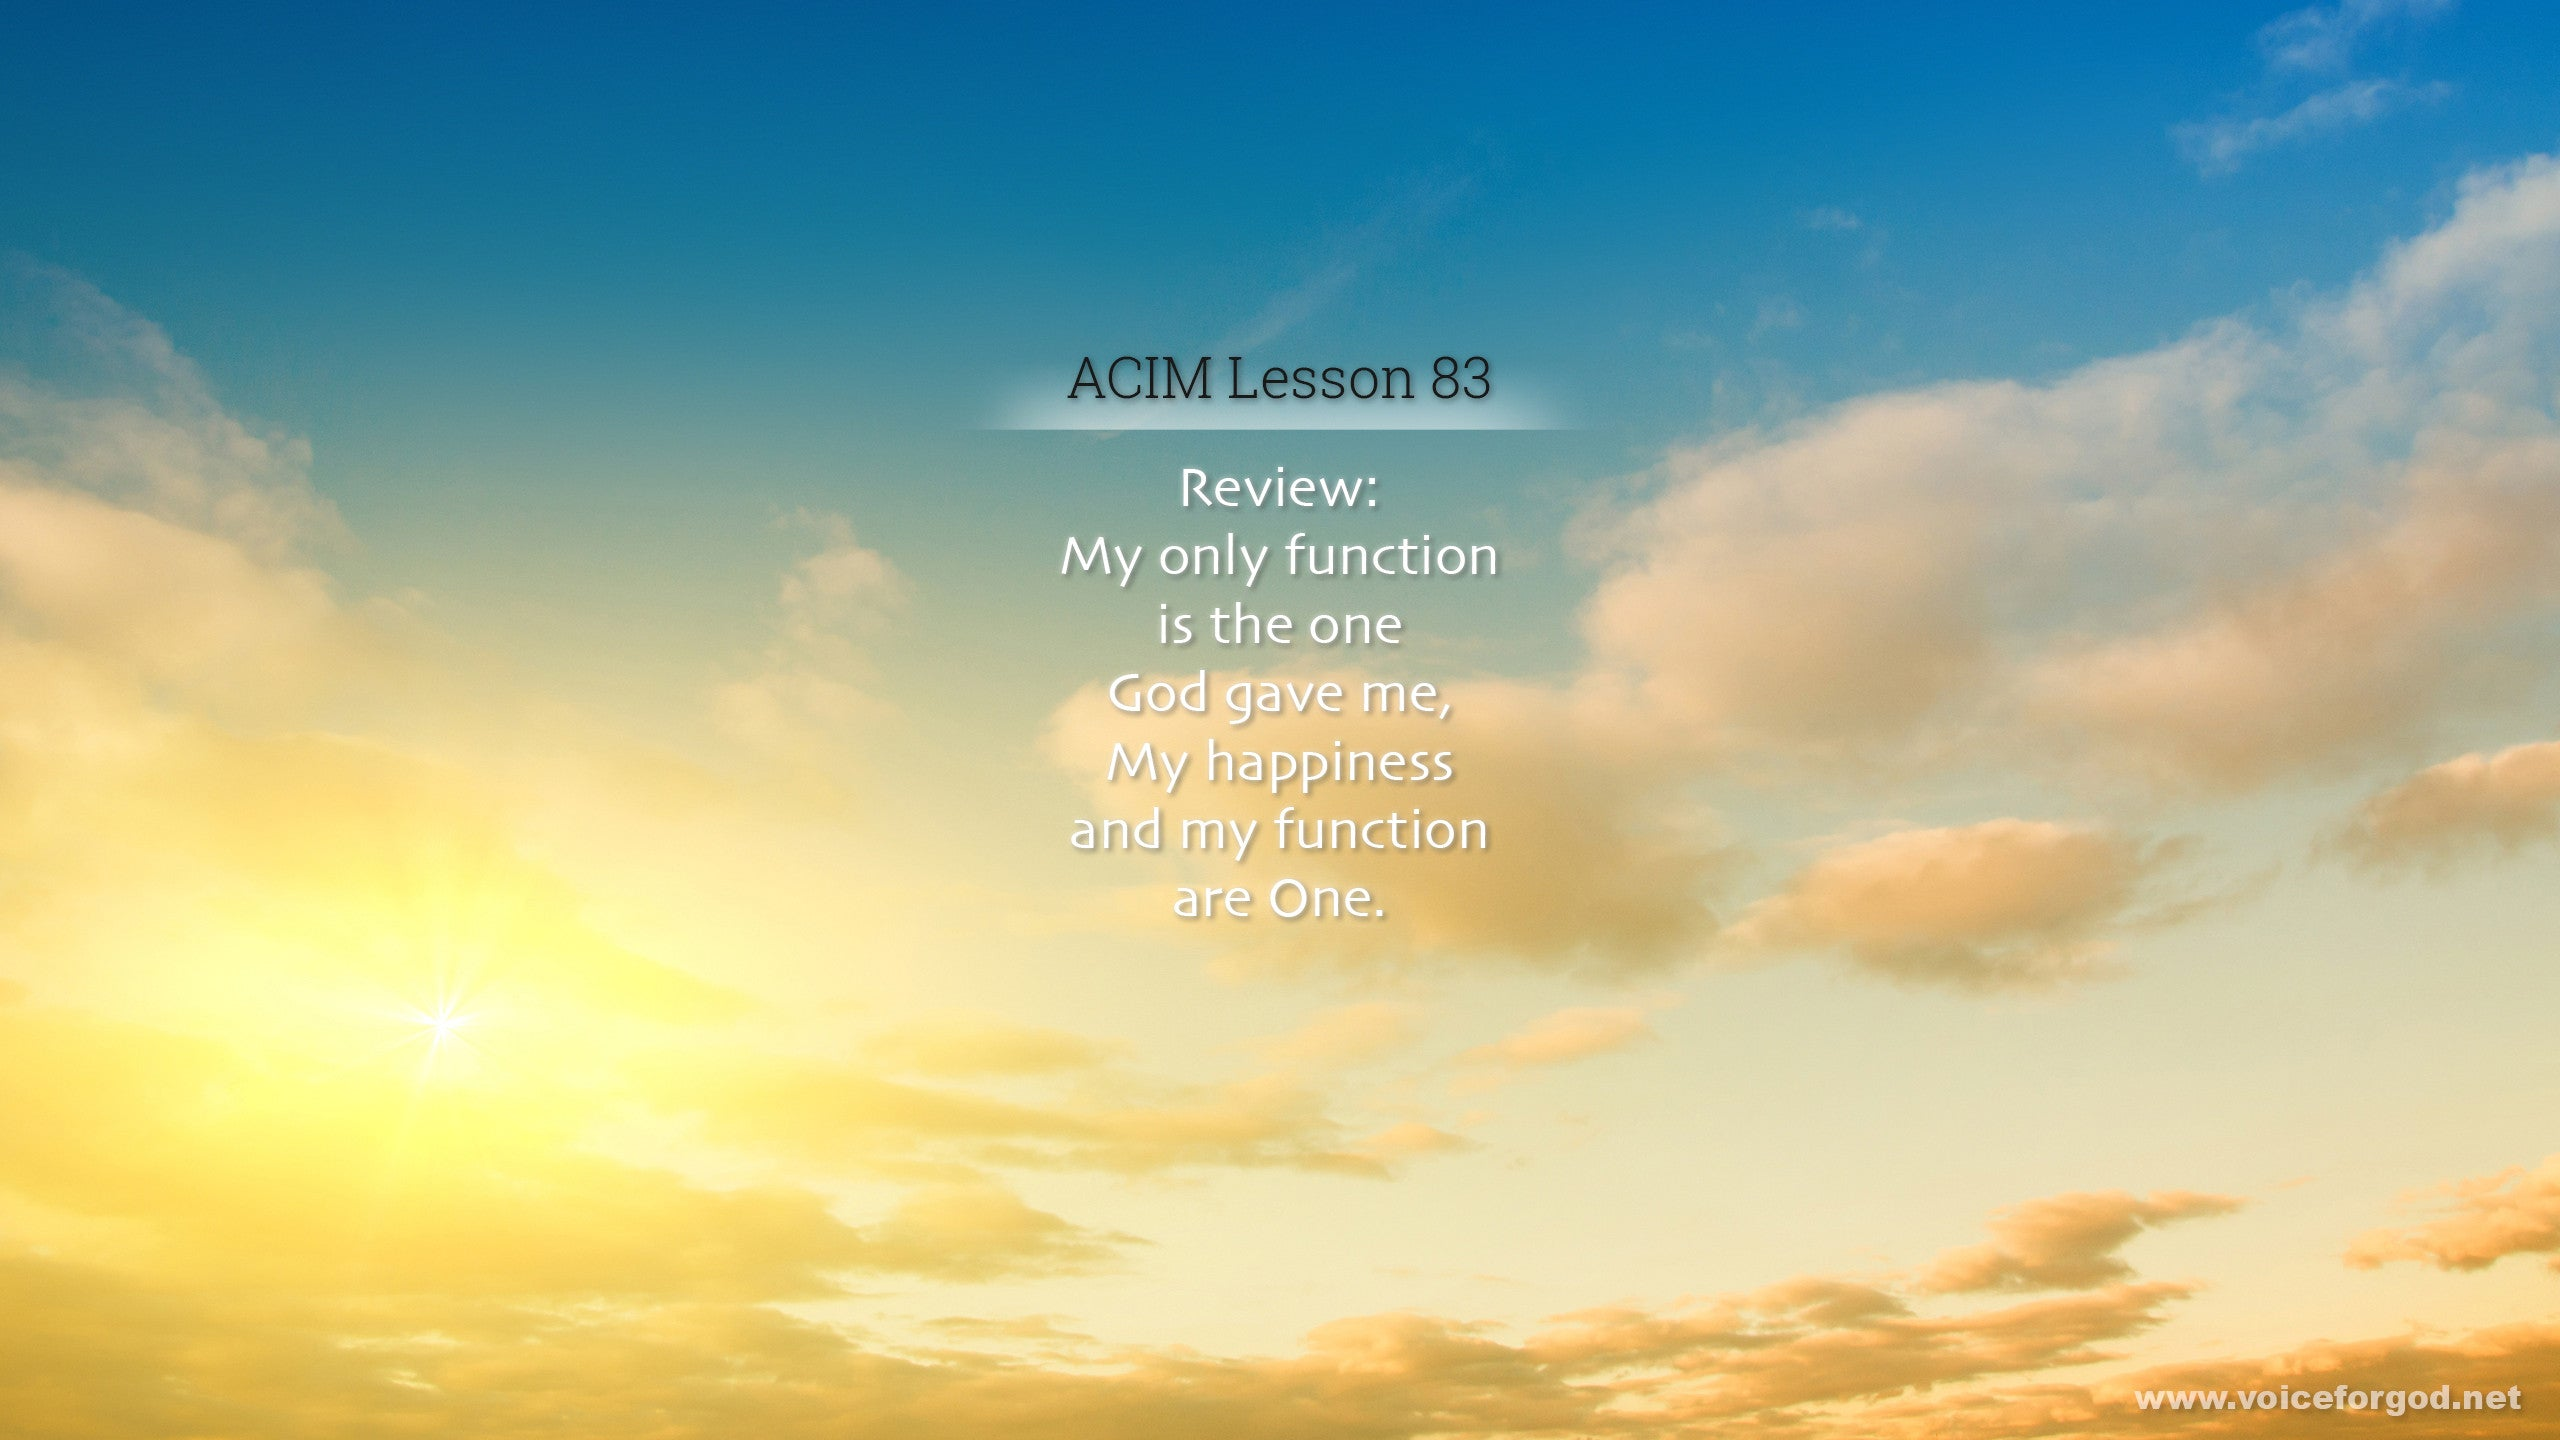 ACIM Lesson 83 - A Course in Miracles Workbook Lesson 83